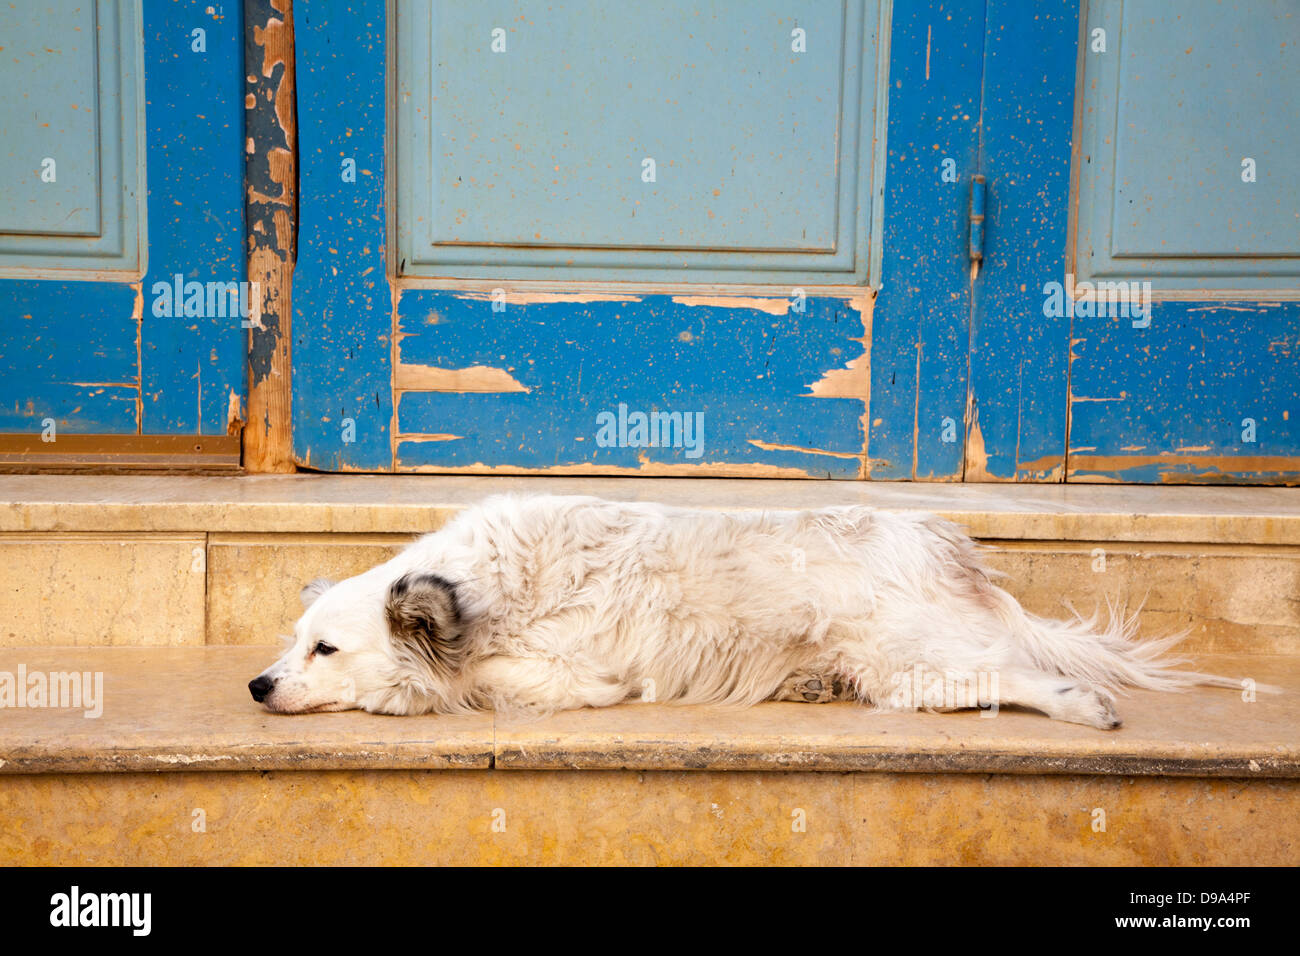 Small white dog in old town Chania on Mediterranean island of Crete - Stock Image